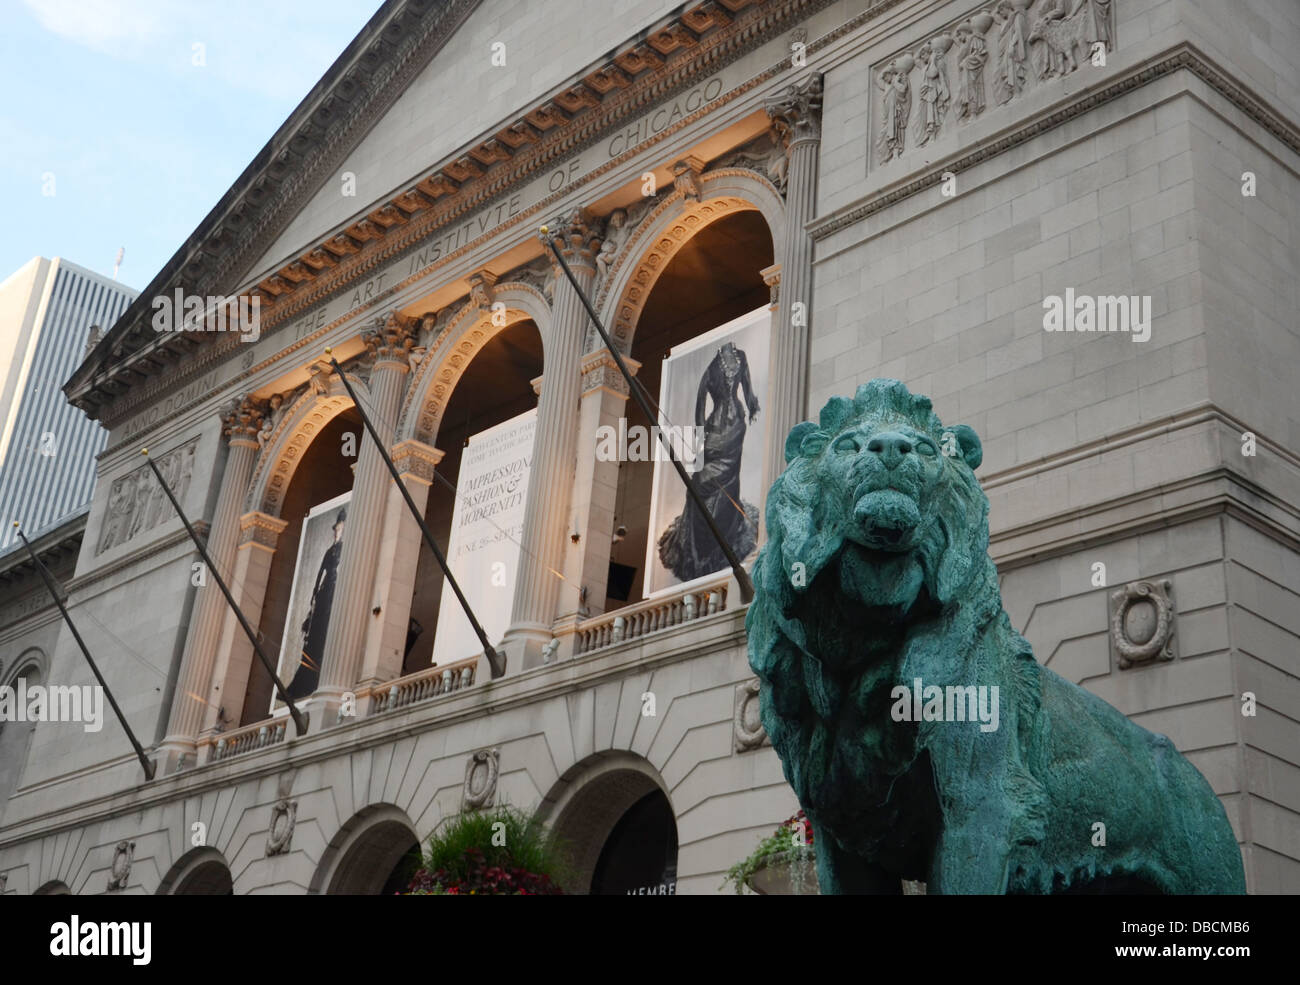 CHICAGO - JULY 18: The Art Institute of Chicago is shown here on July 18, 2013. - Stock Image